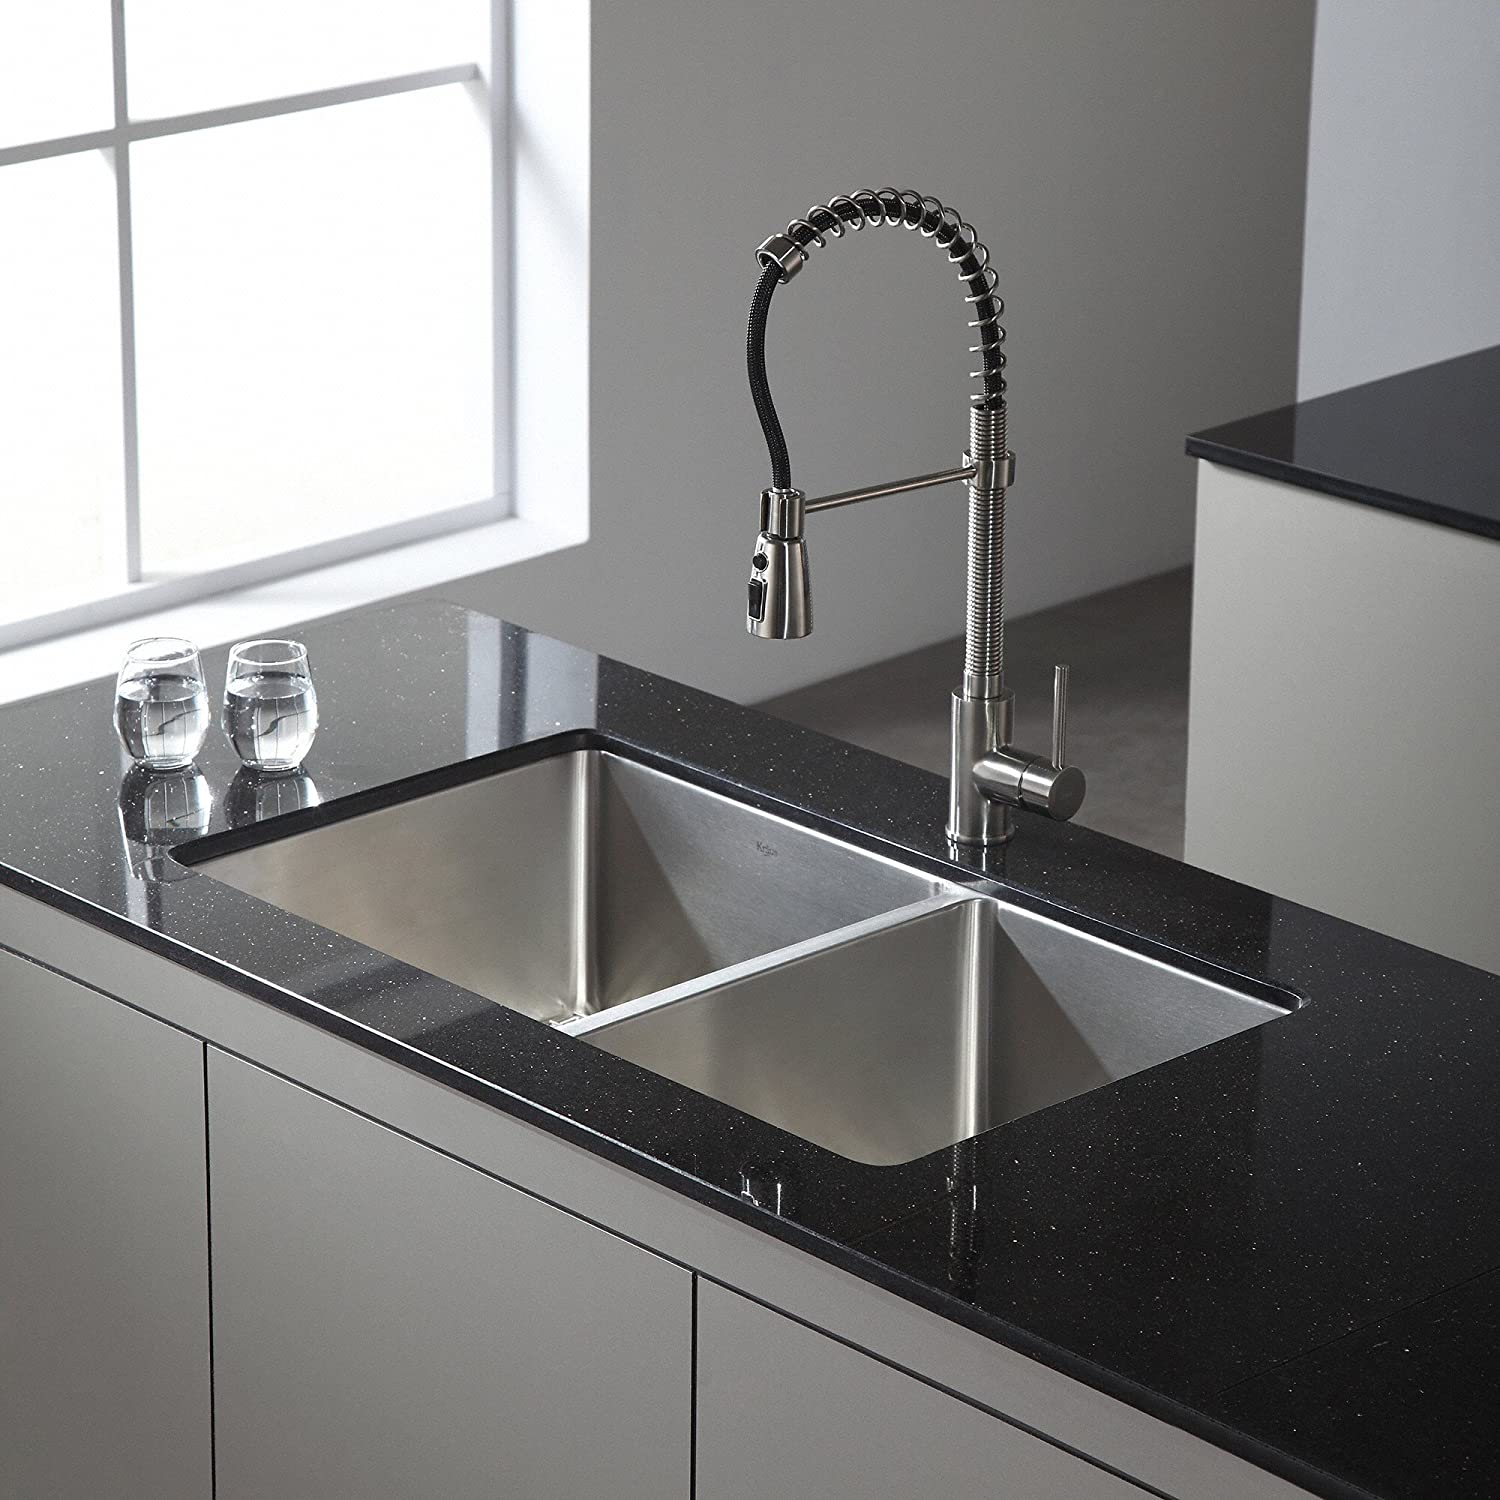 Best Stainless Steel Undermount Sink